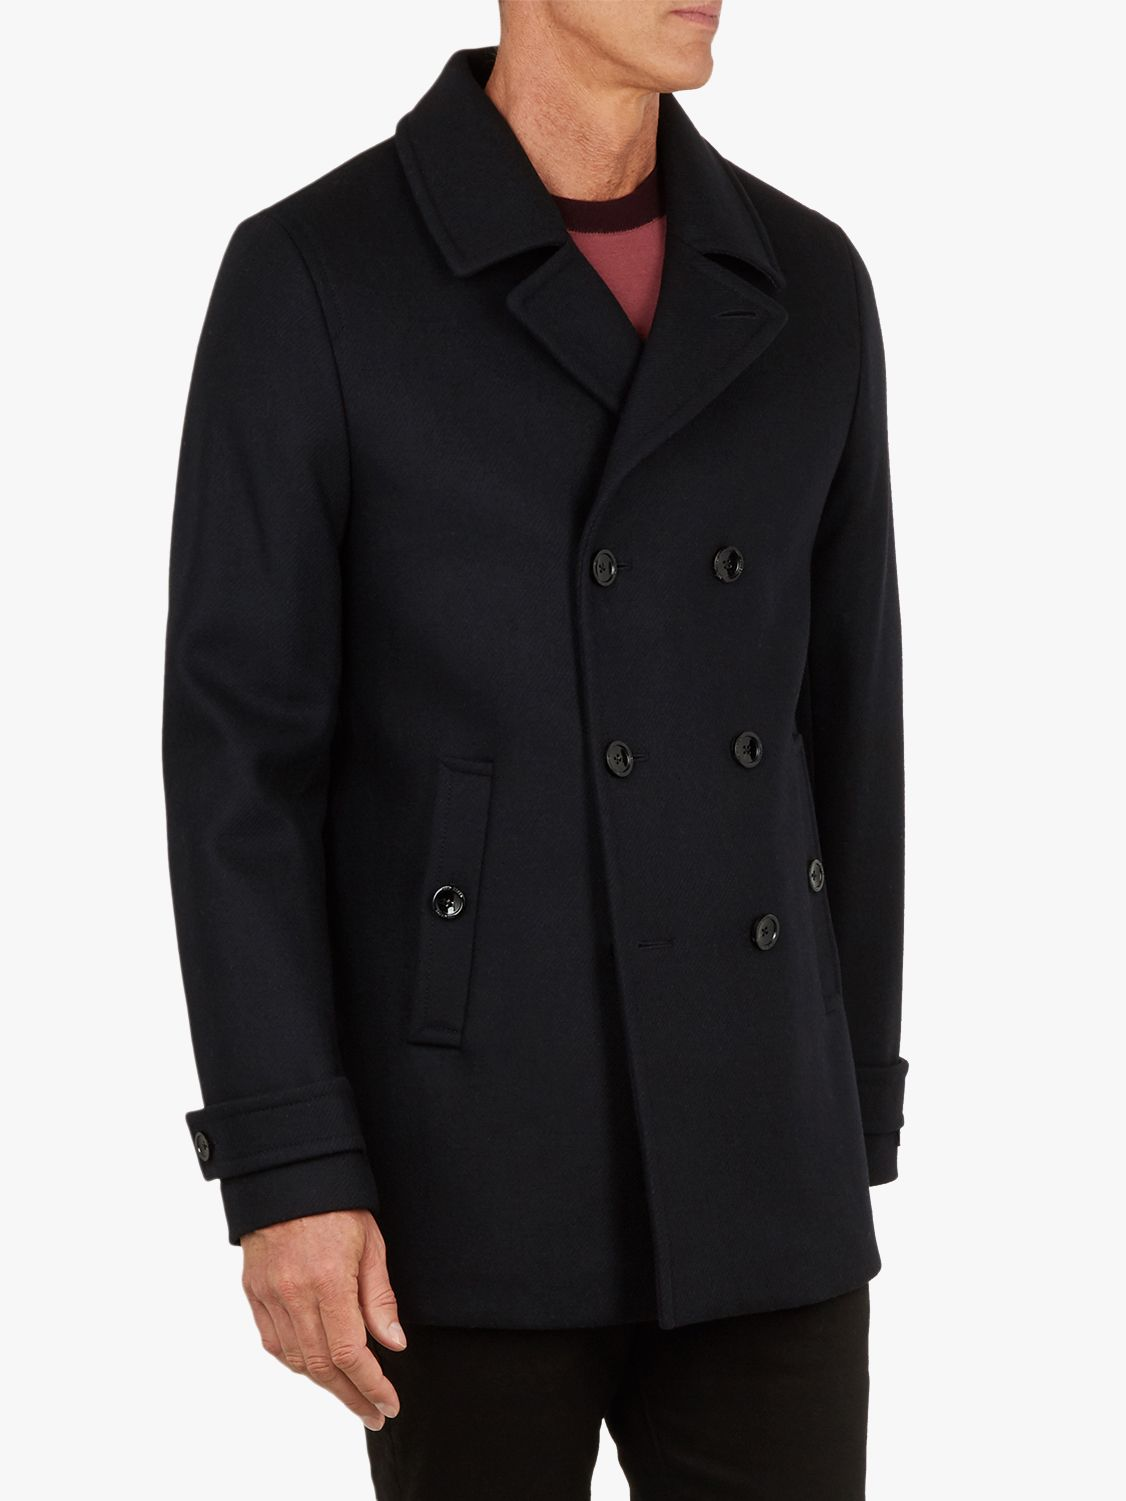 cfb87758c5d9e Ted Baker T for Tall Grilld Peacoat